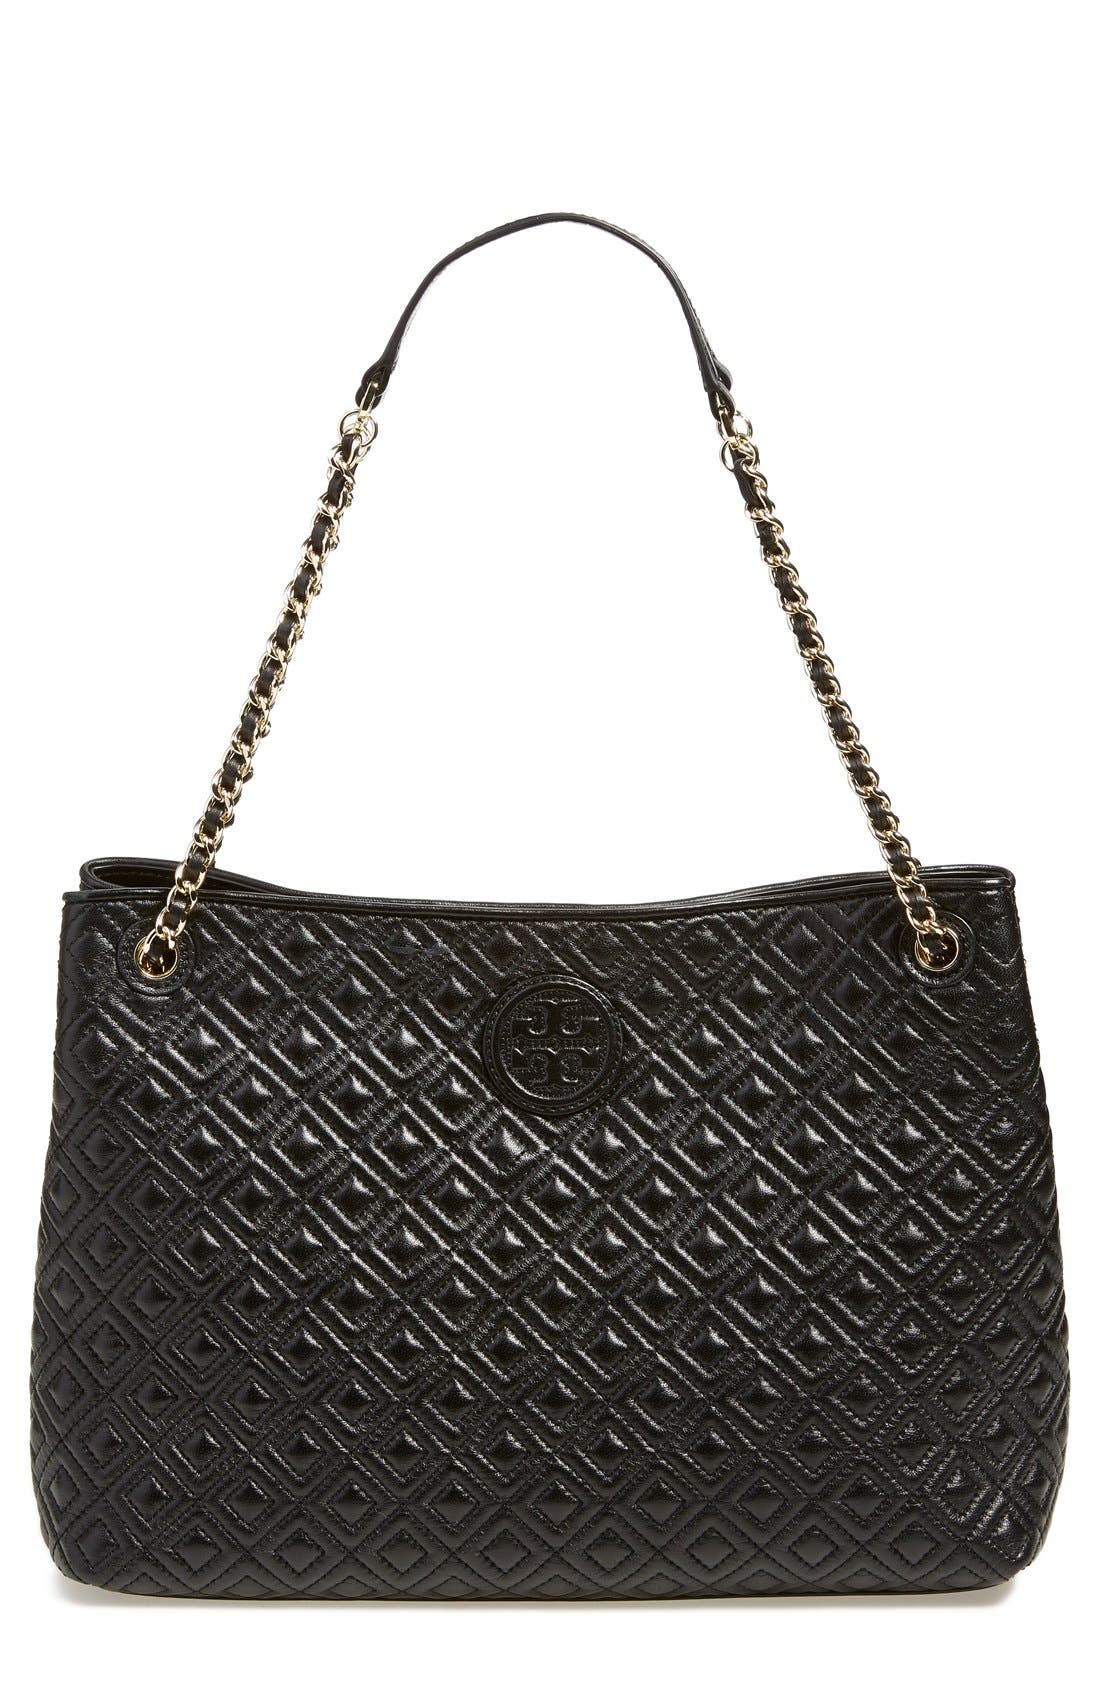 Main Image - Tory Burch 'Marion' Diamond Quilted Leather Tote